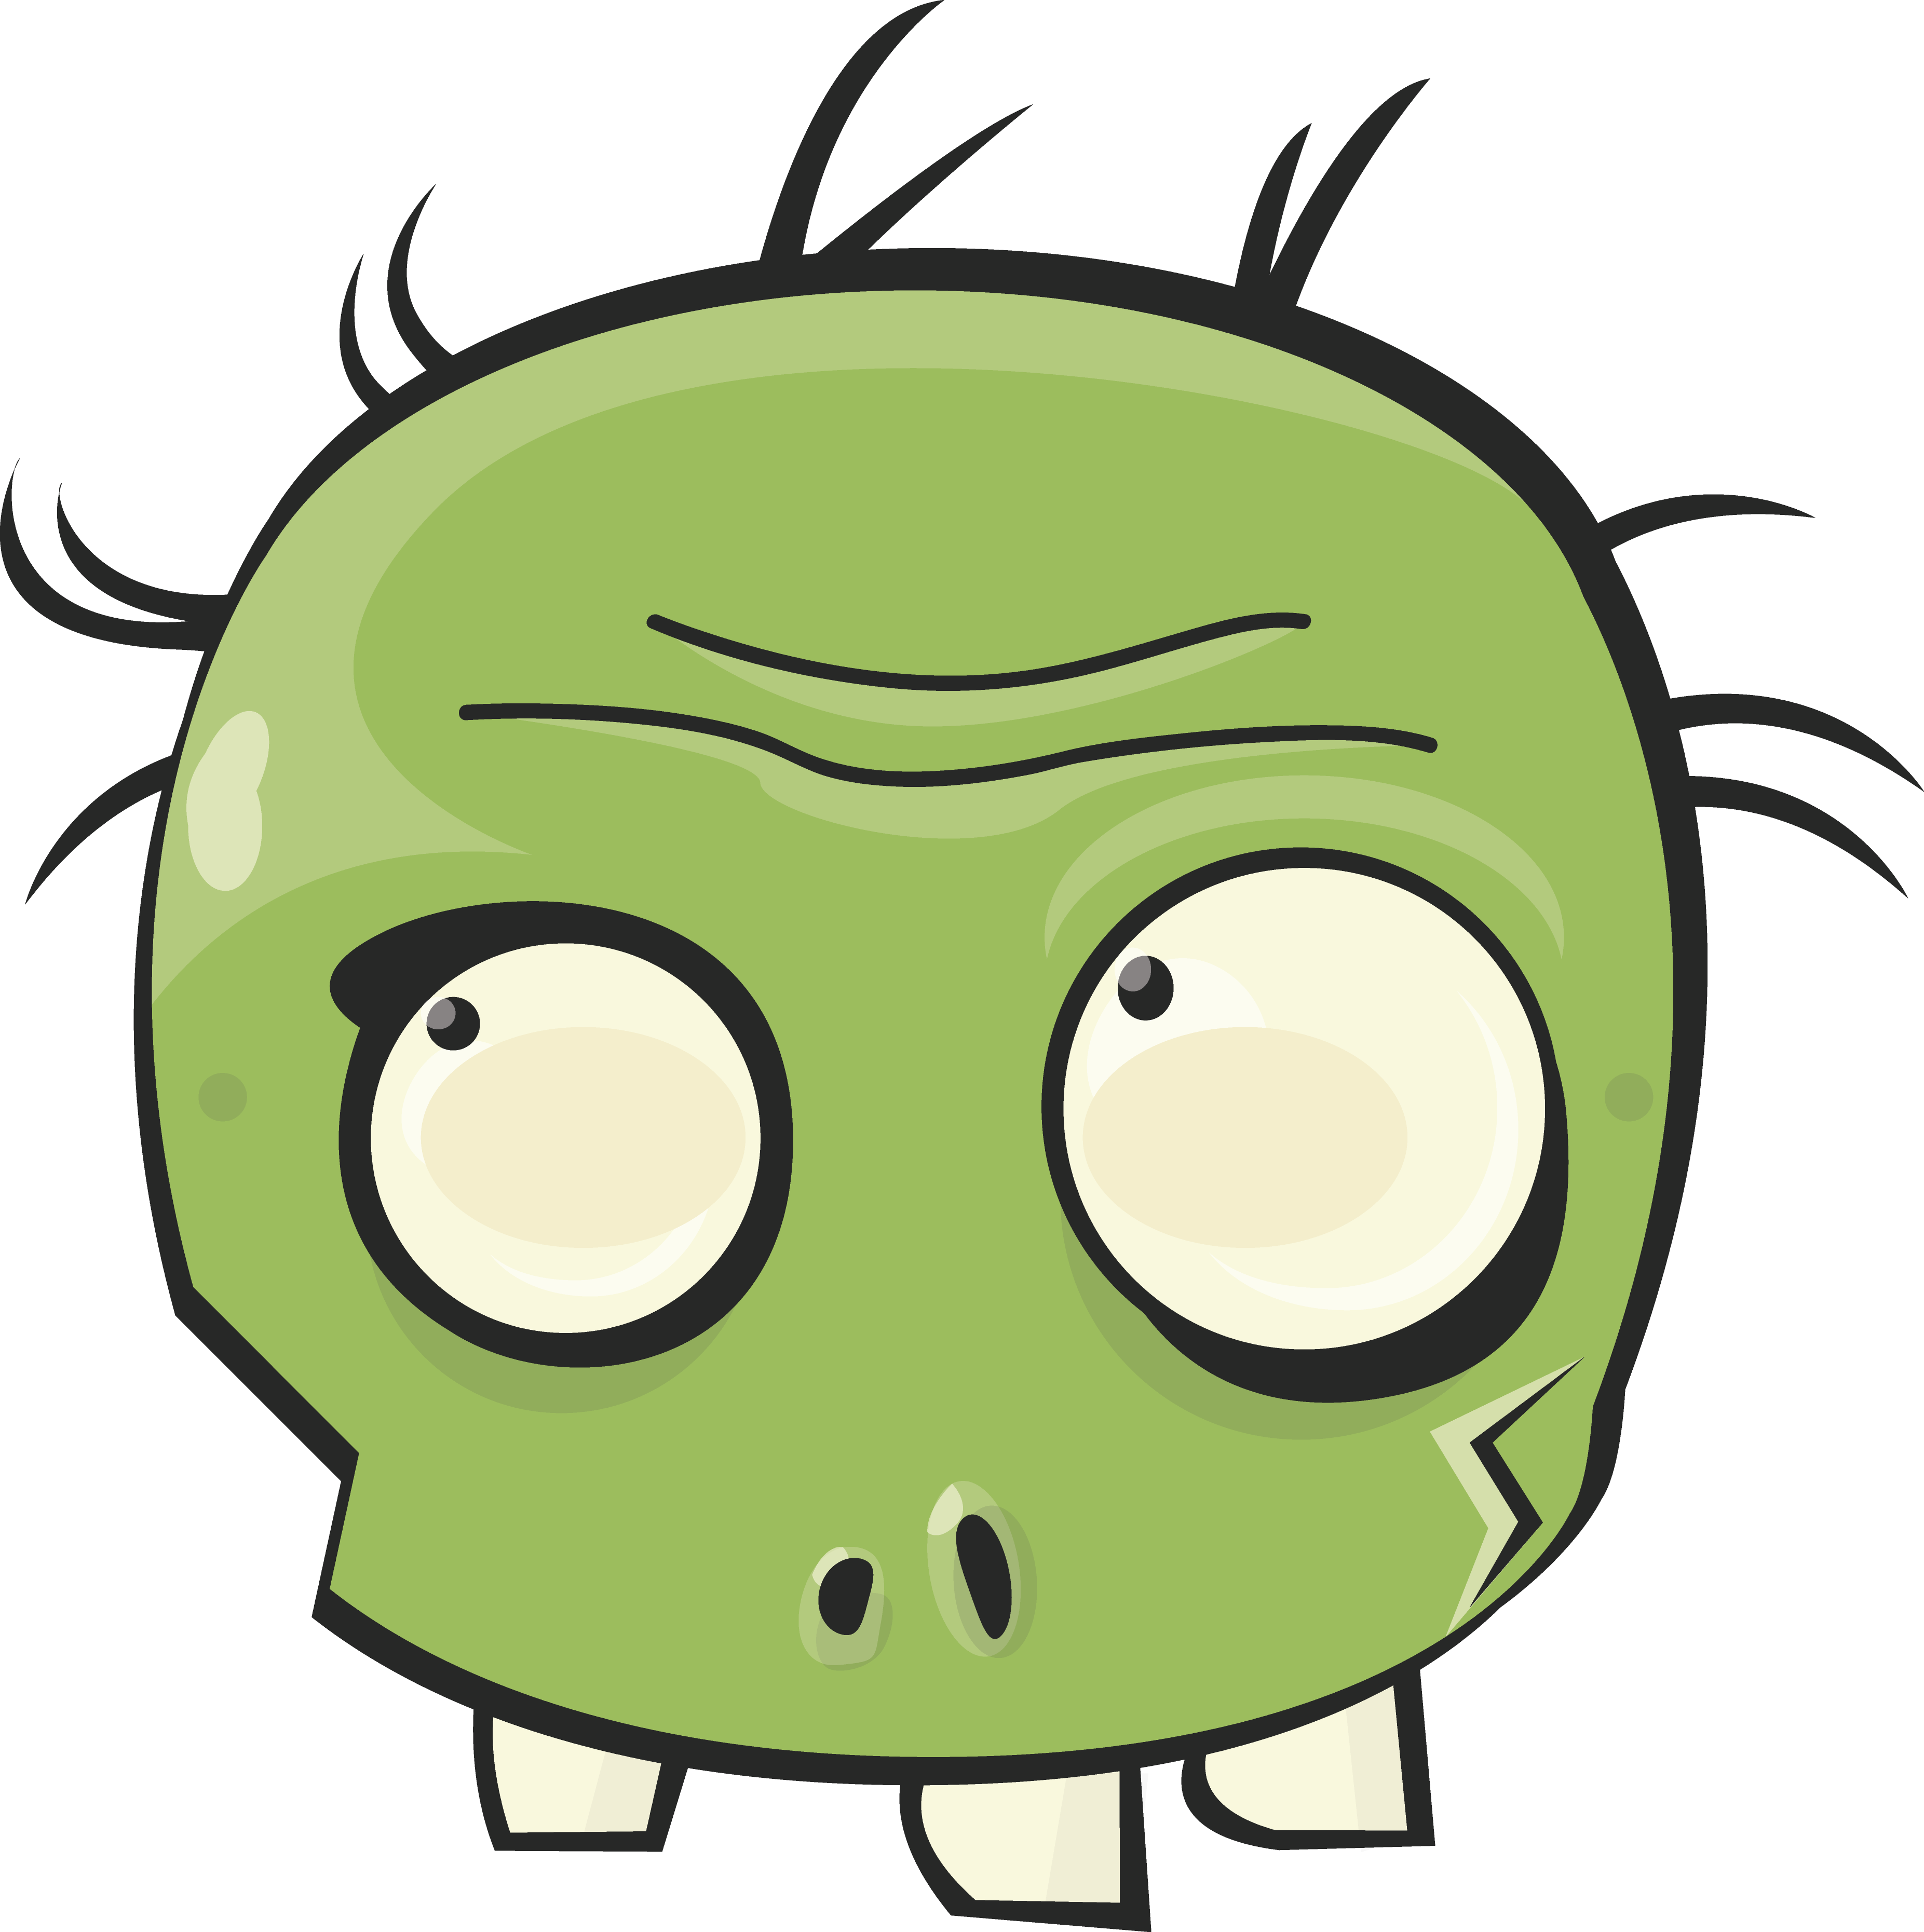 I have a friend who needed a Plants versus Zombies mask for a party